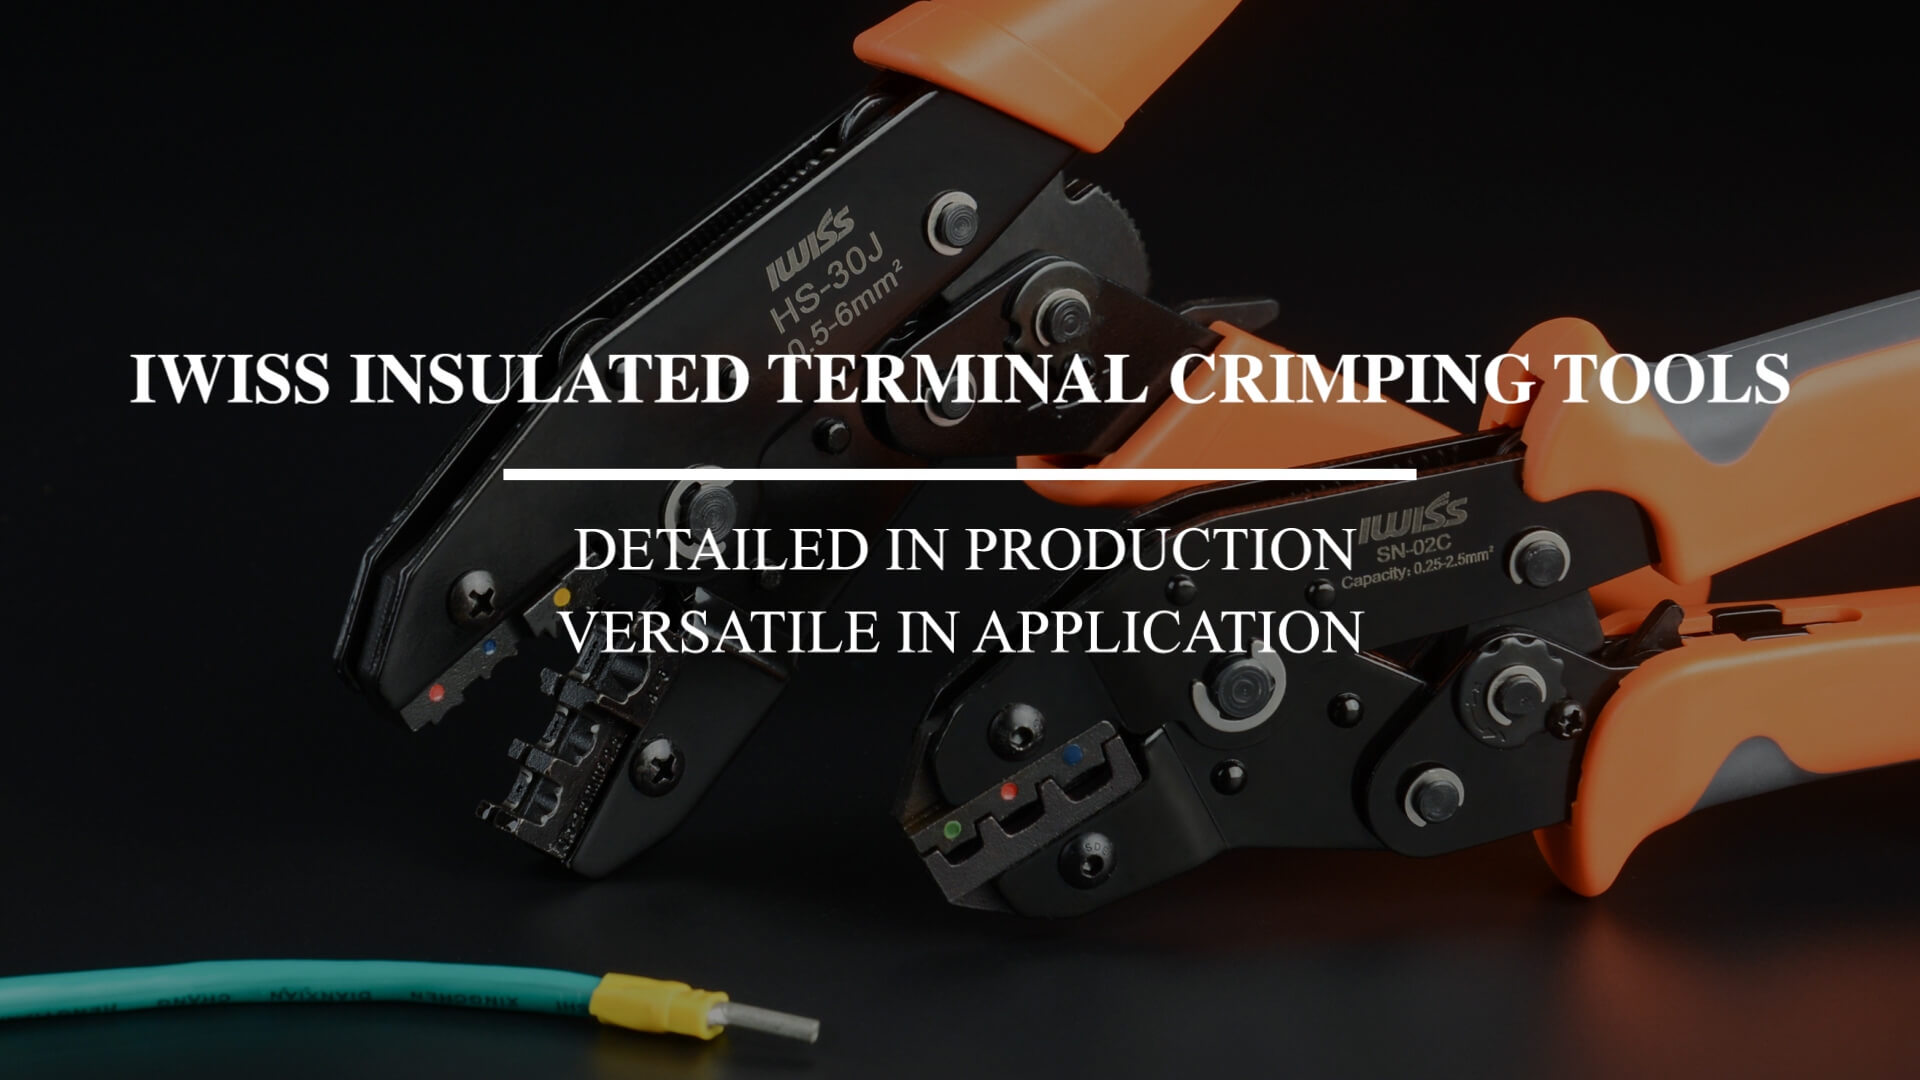 IWISS INSULATED TERMINAL CRIMPING TOOLS